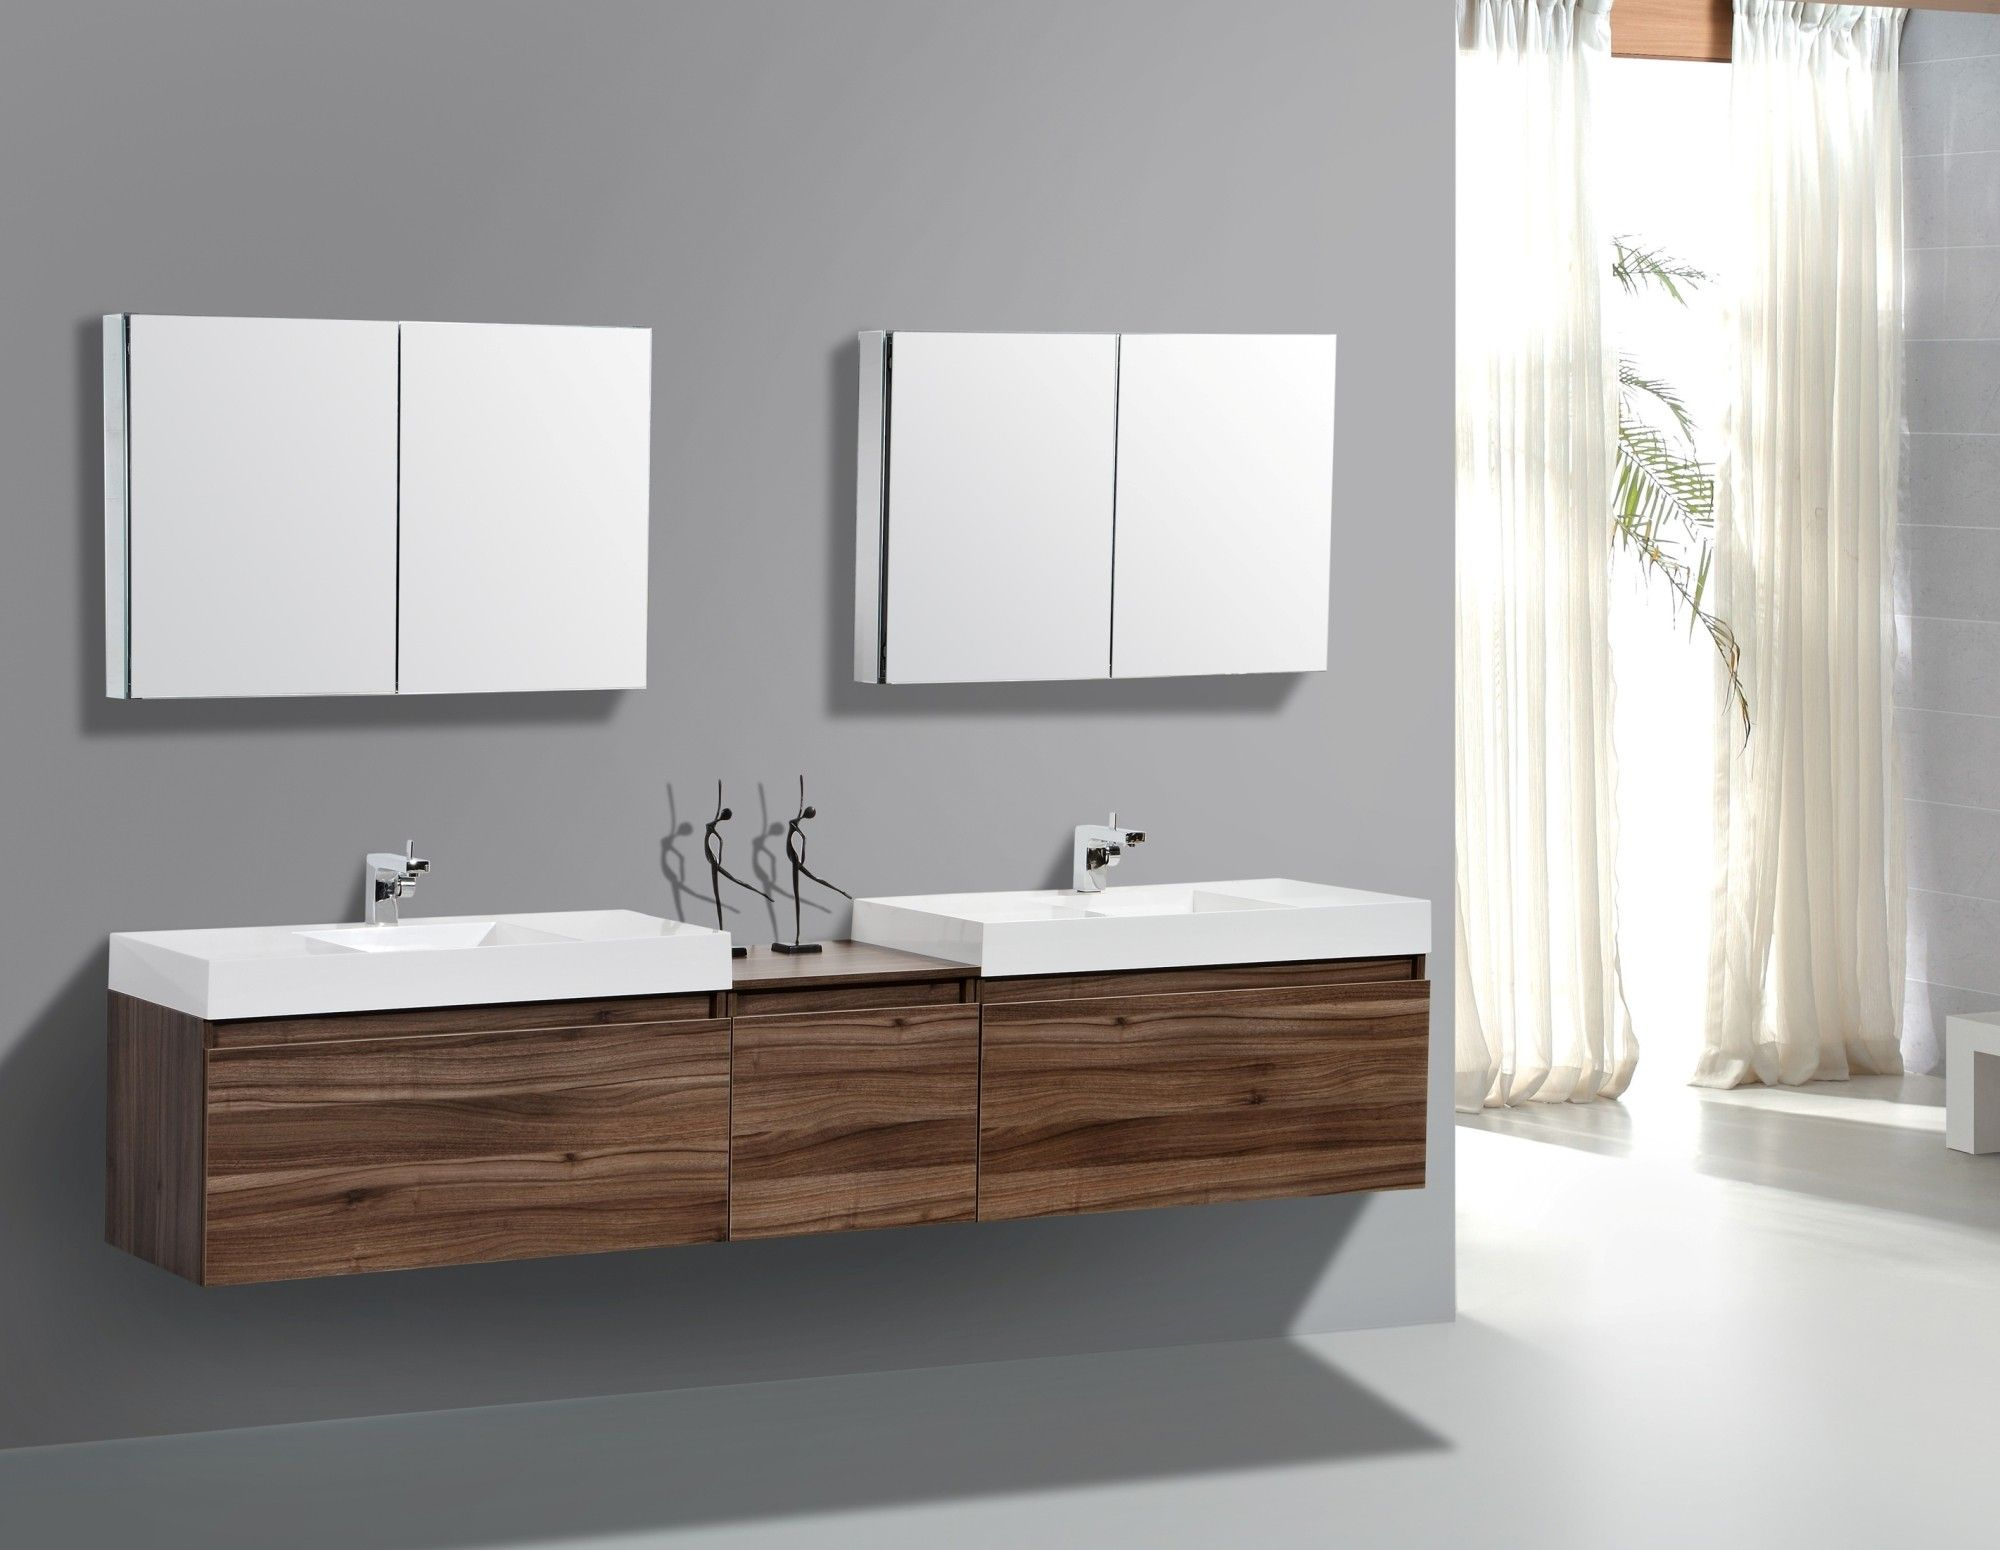 Aquamoon Venice 98 Double Modern Bathroom Vanity Set Walnut Floating Bathroom Vanities Bathroom Vanity Designs Modern Bathroom